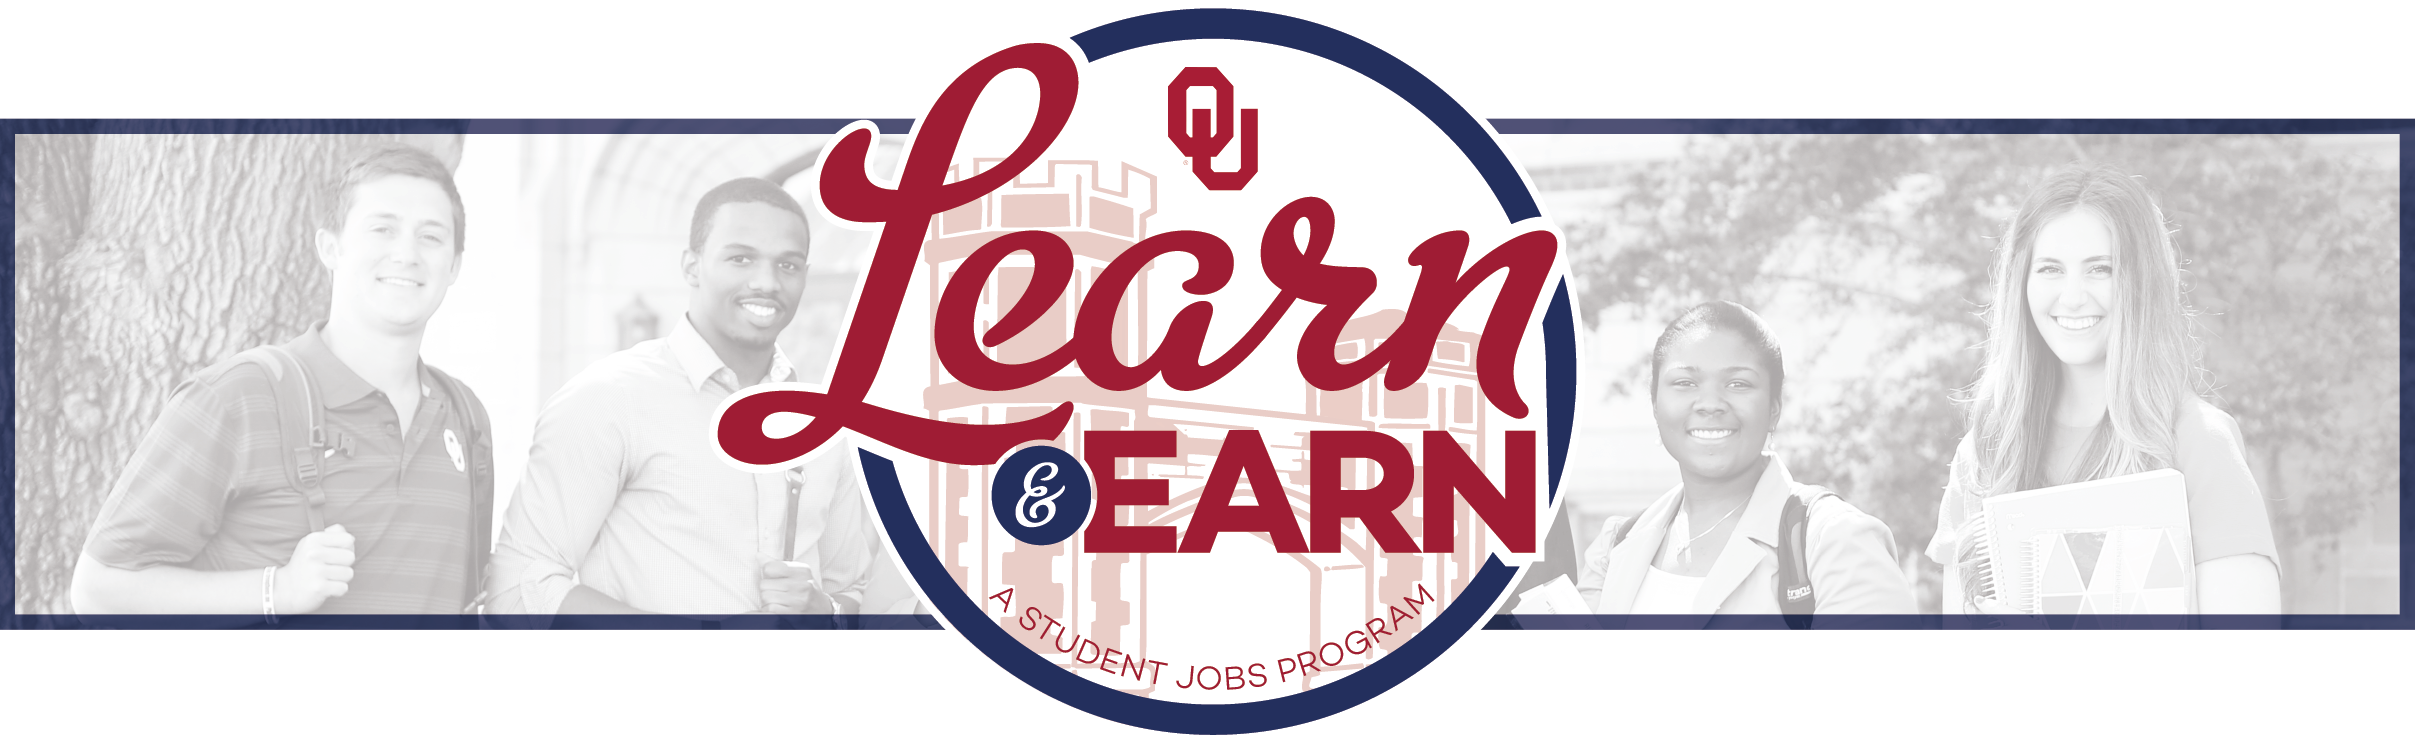 OU Learn & Earn logo with students in the background.